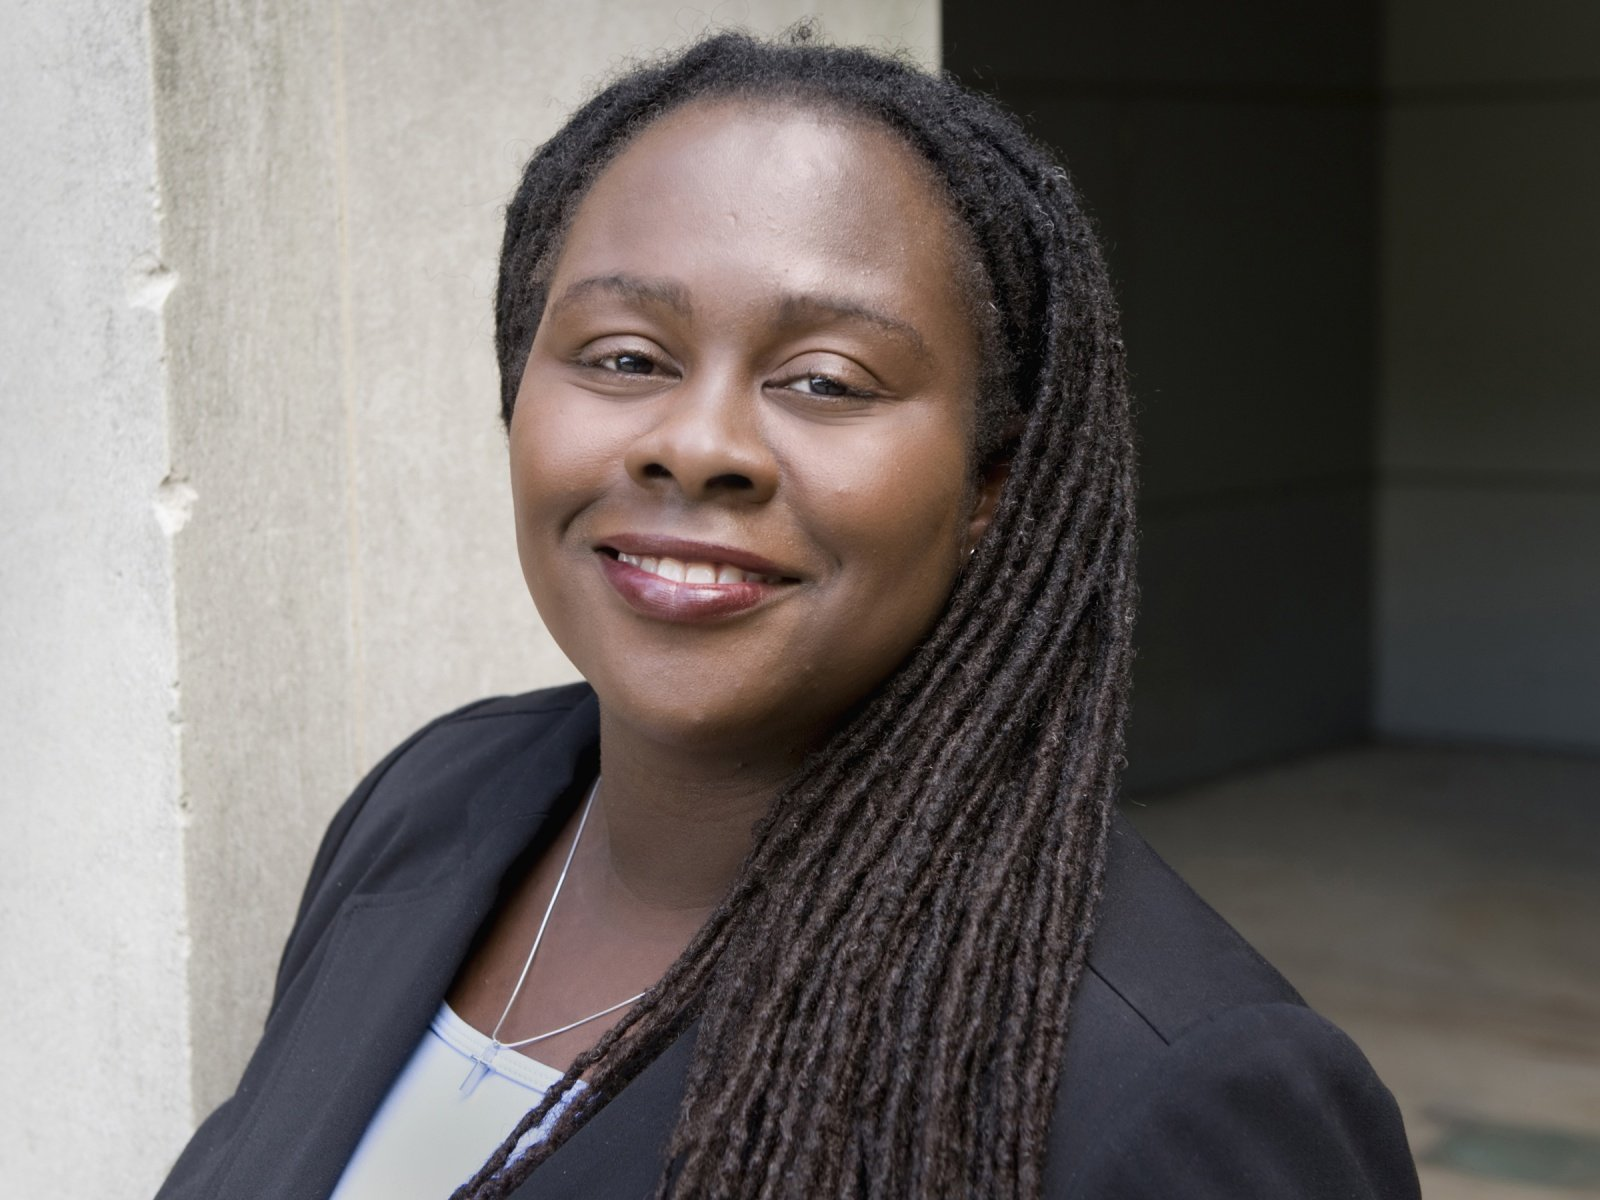 Law Professor Works To Rescind Hairstyle Policies That Discriminate Against Black Women